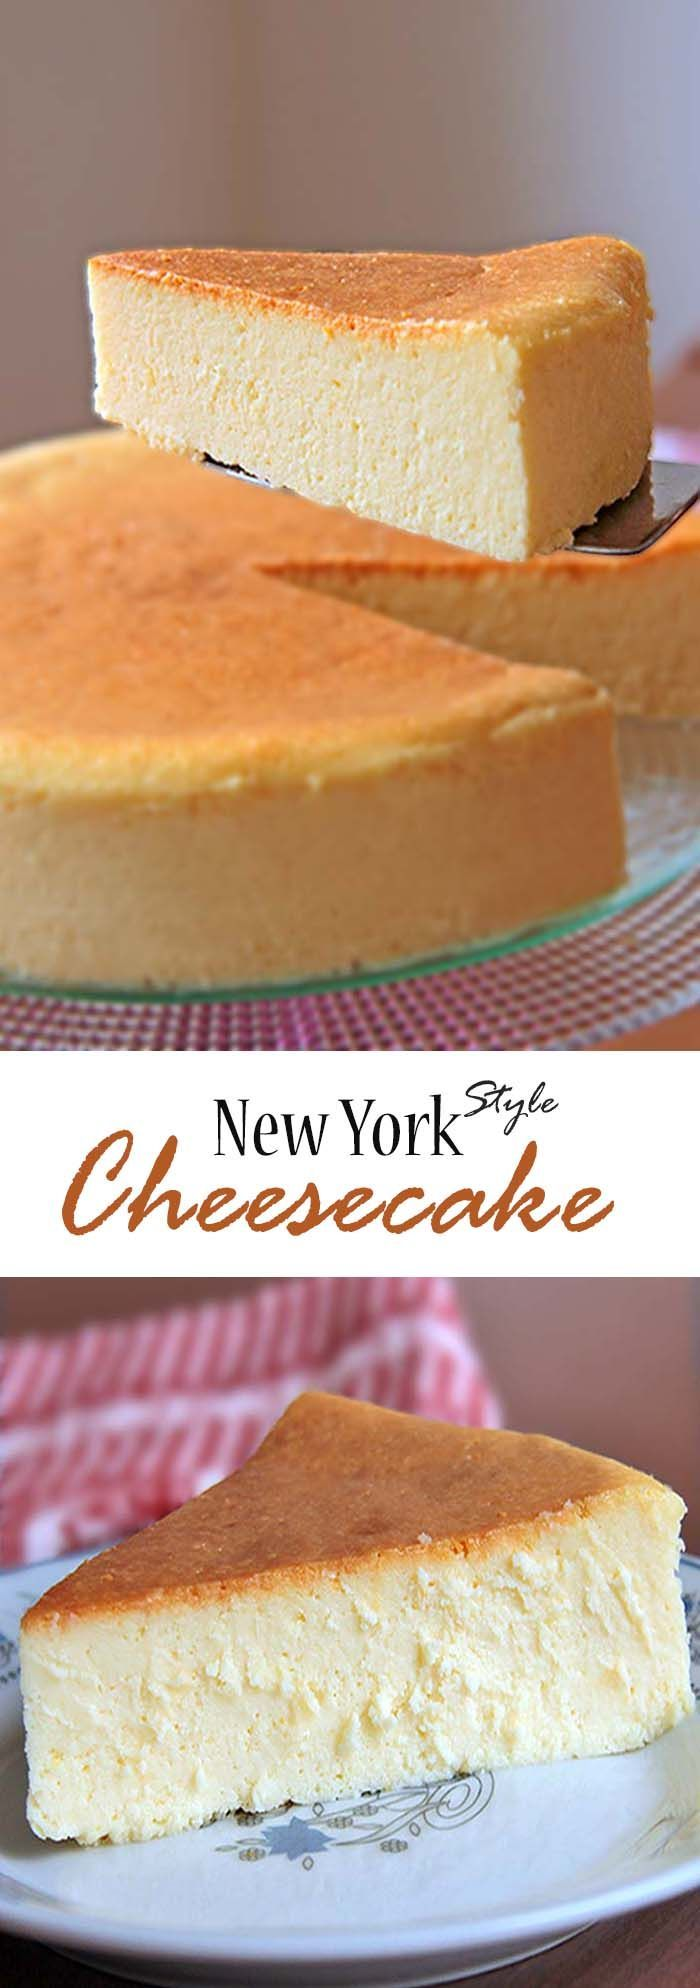 New York Style Cheesecake is creamy smooth, lightly sweet, with a touch of lemon. Suffice it to say, my search for the perfect cheesecake recipe ends here.